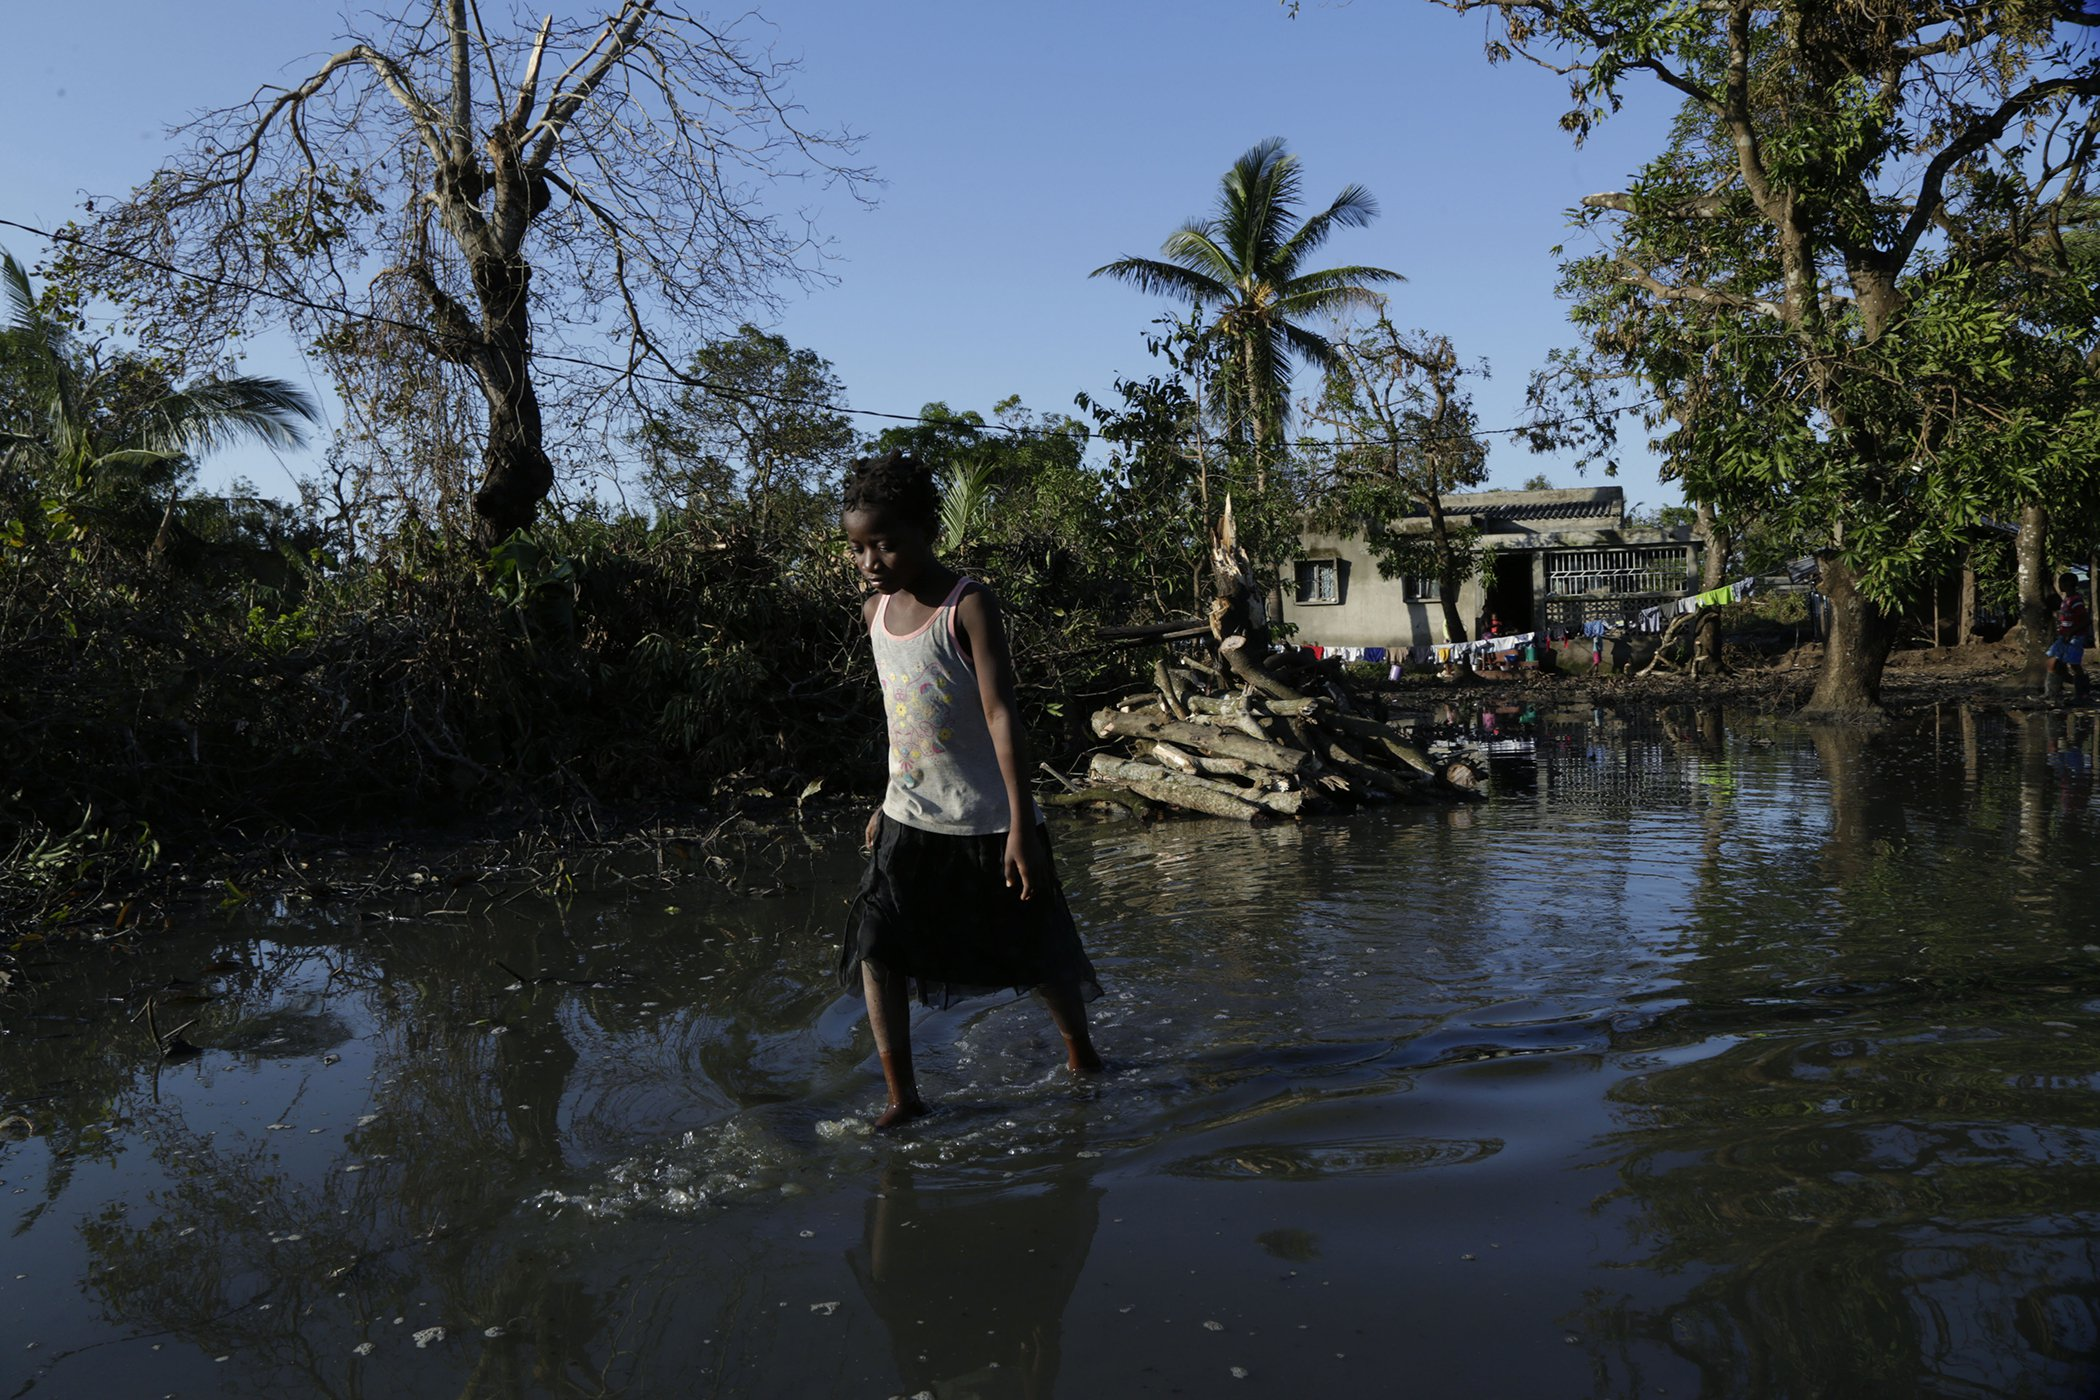 UN-Climate-Report-2019-Mozambique-Tropical-Storms-Cyclone.jpg